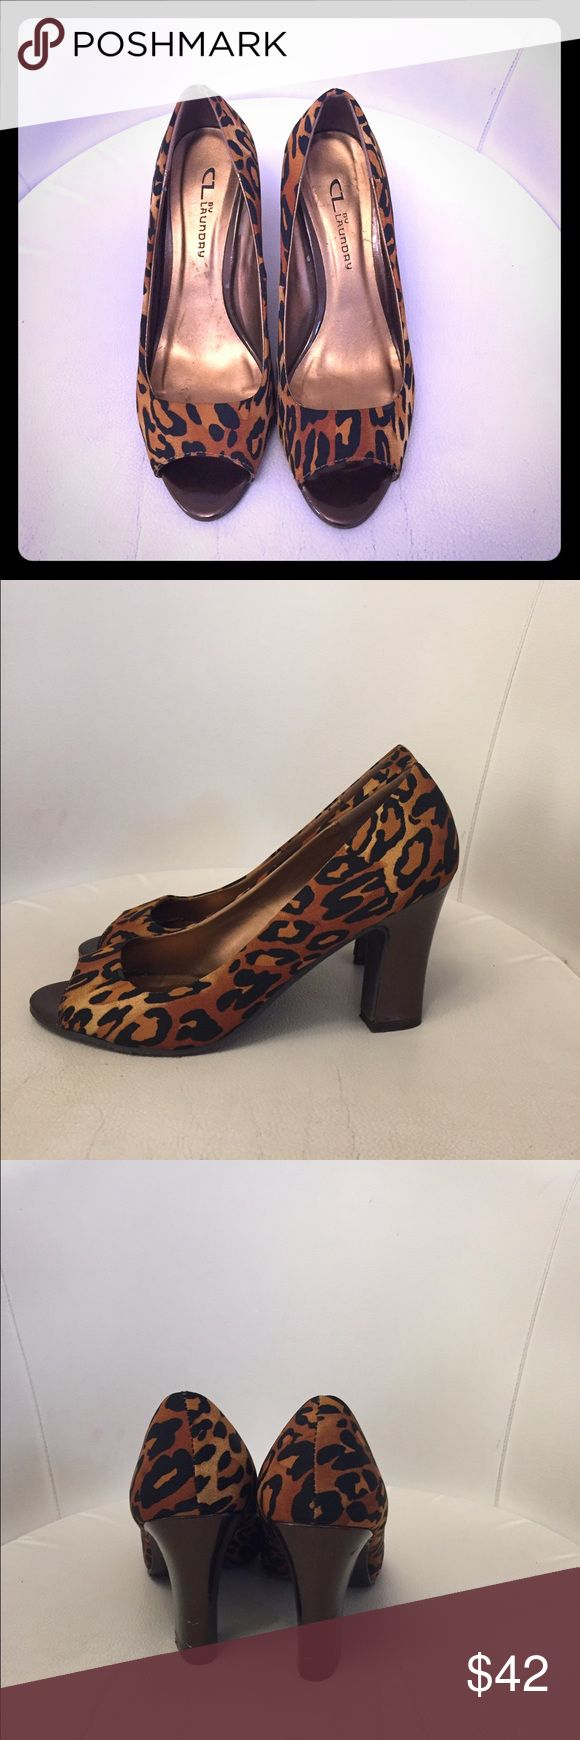 Chinese laundry leopard print heels. Chinese laundry leopard print heels. Chinese Laundry Shoes Heels